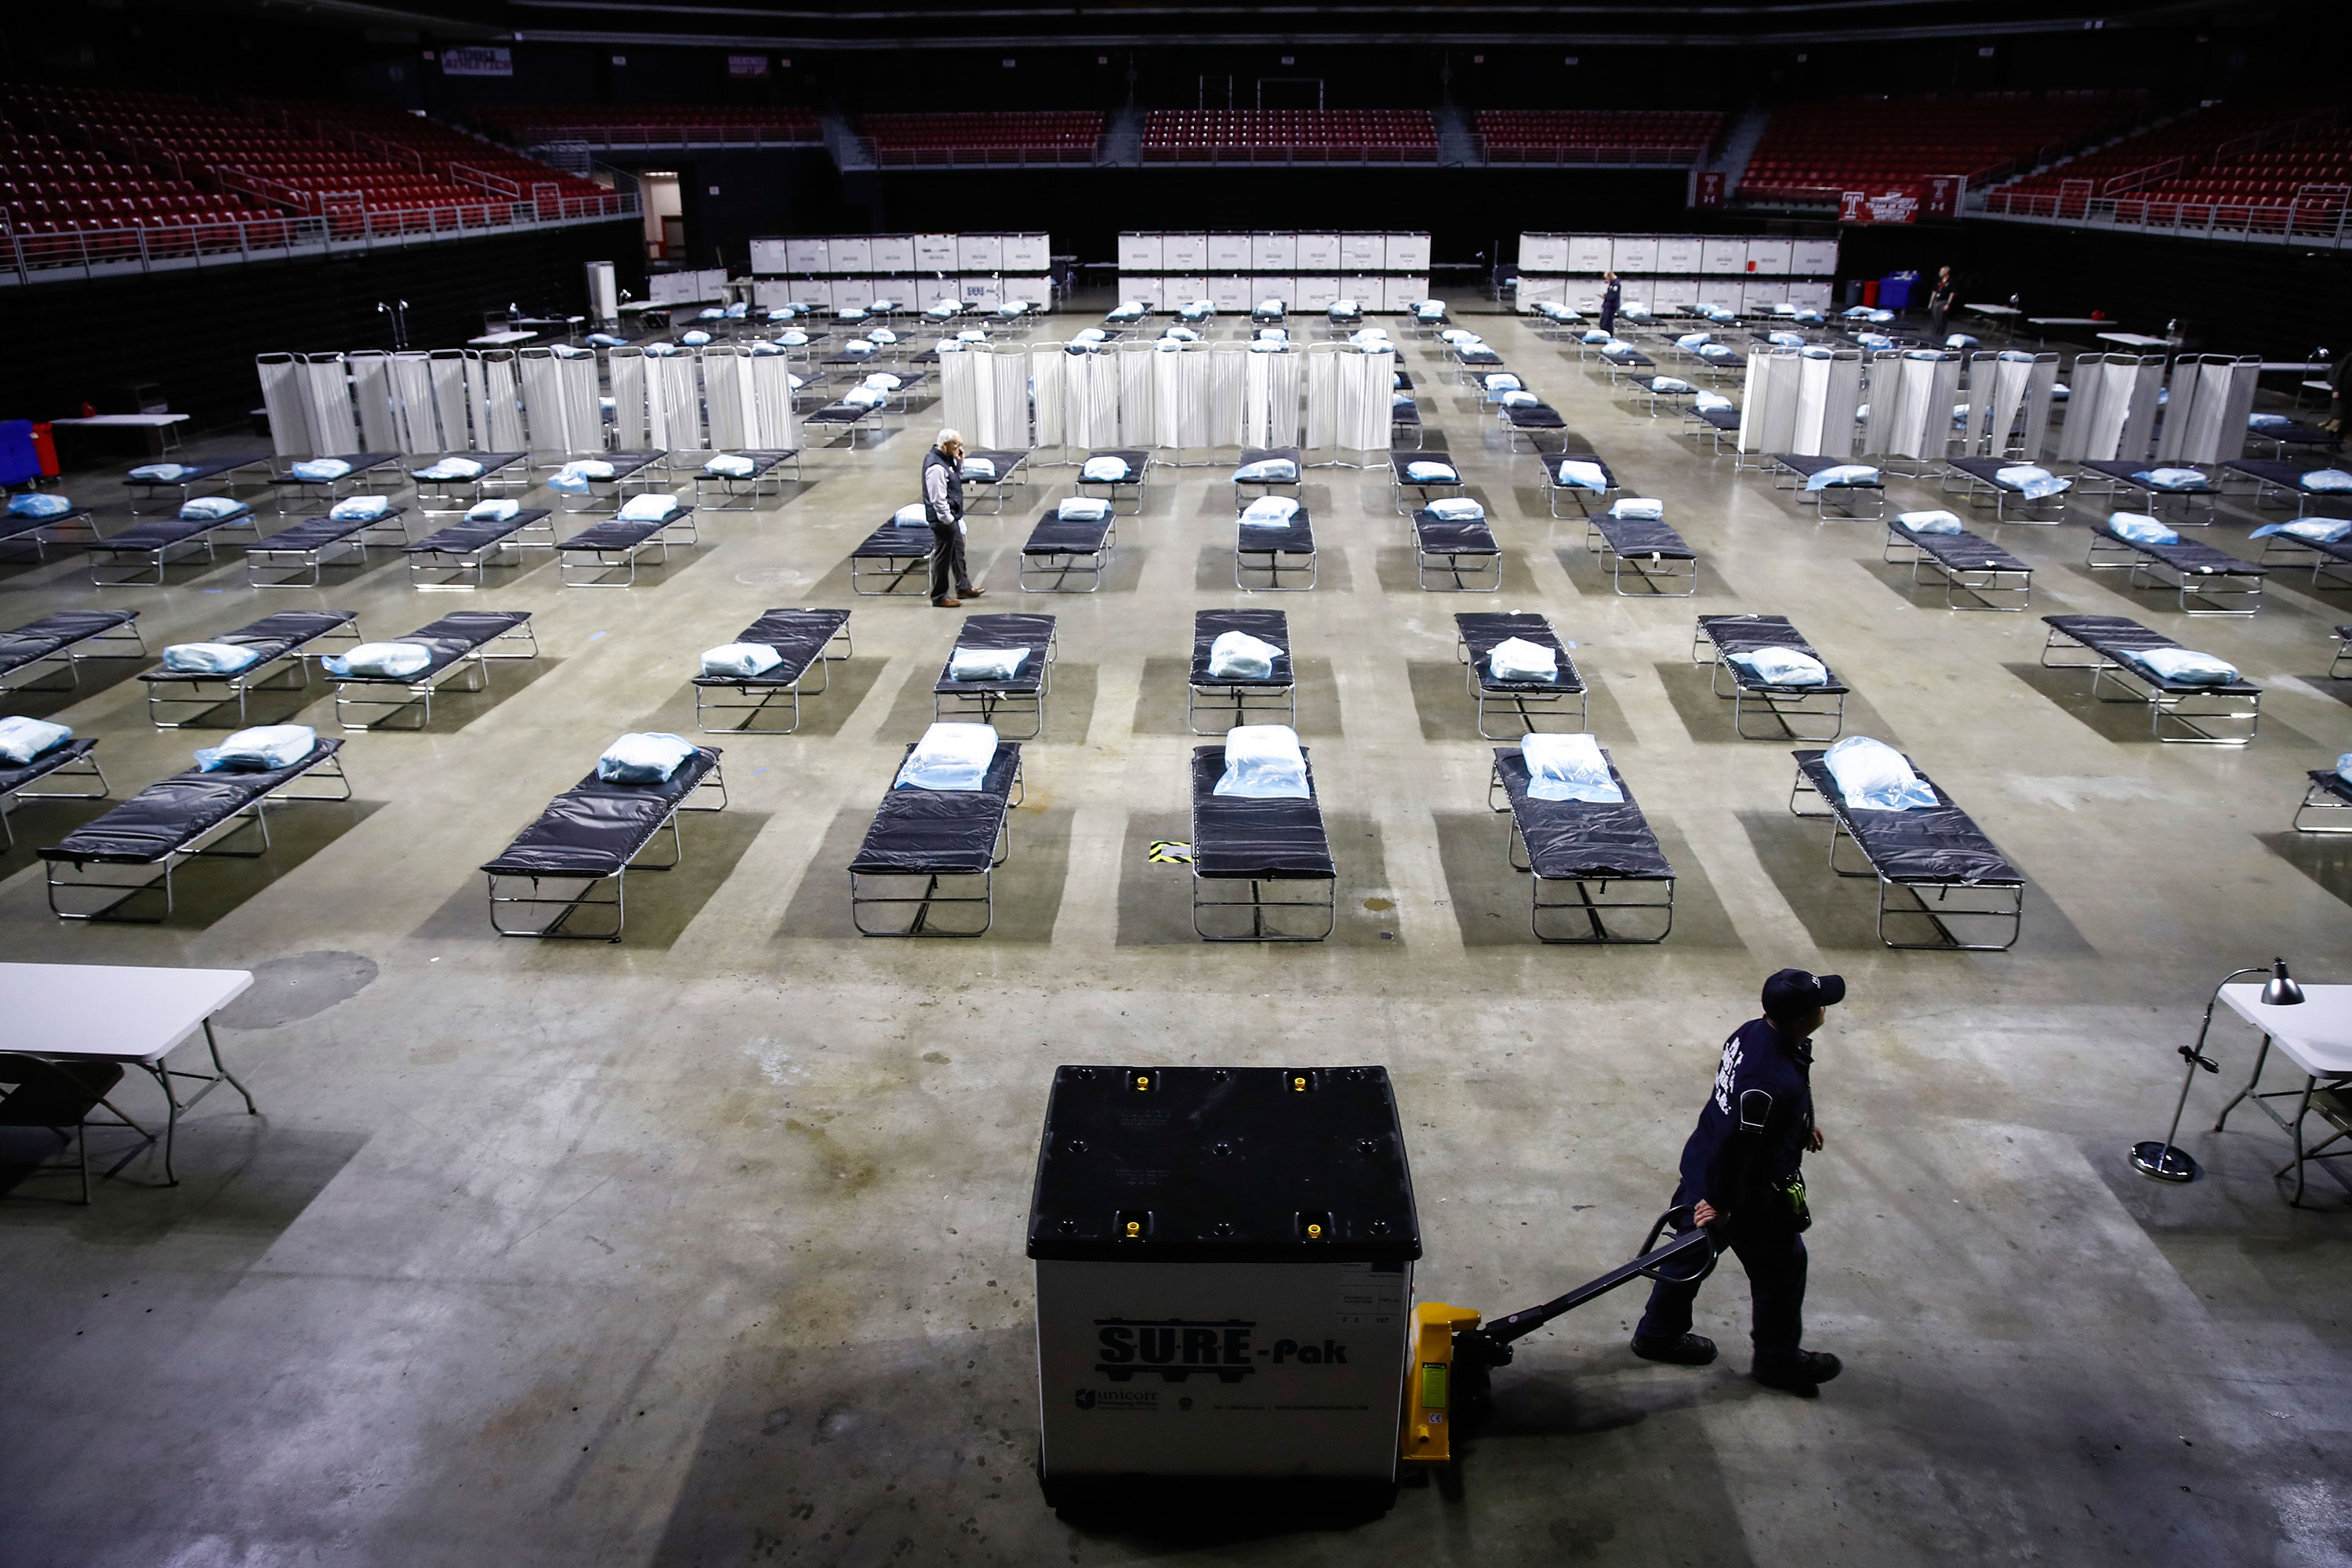 A temporary hospital is set up at Temple University's Liacouras Center in Philadelphia on March 30.